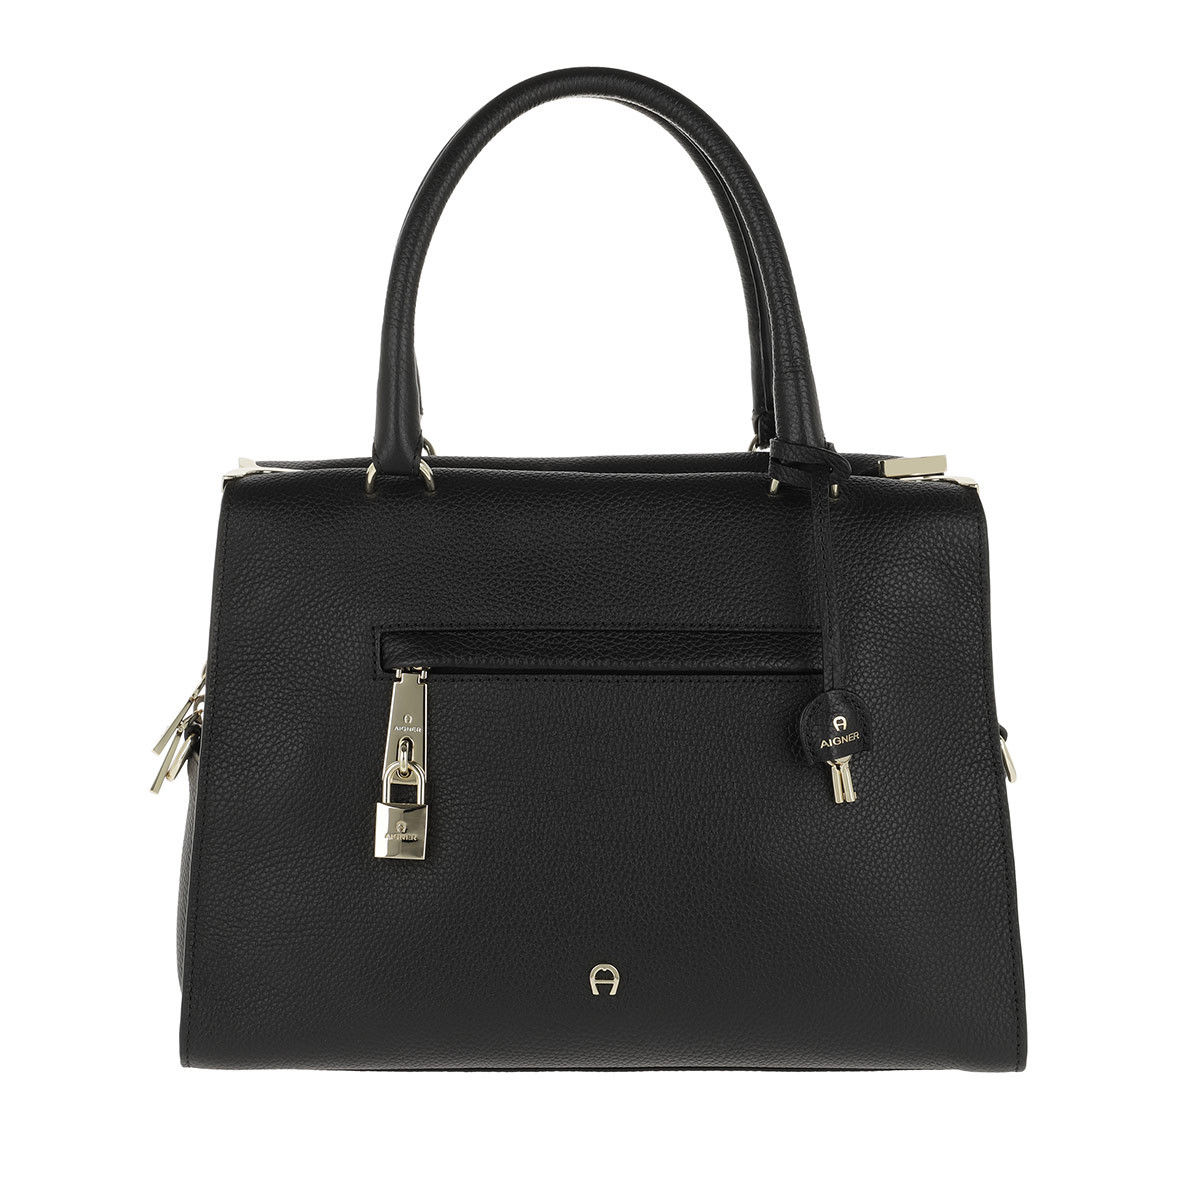 Aigner Tote - Kaia M Handle Bag Black - in schwarz - für Damen